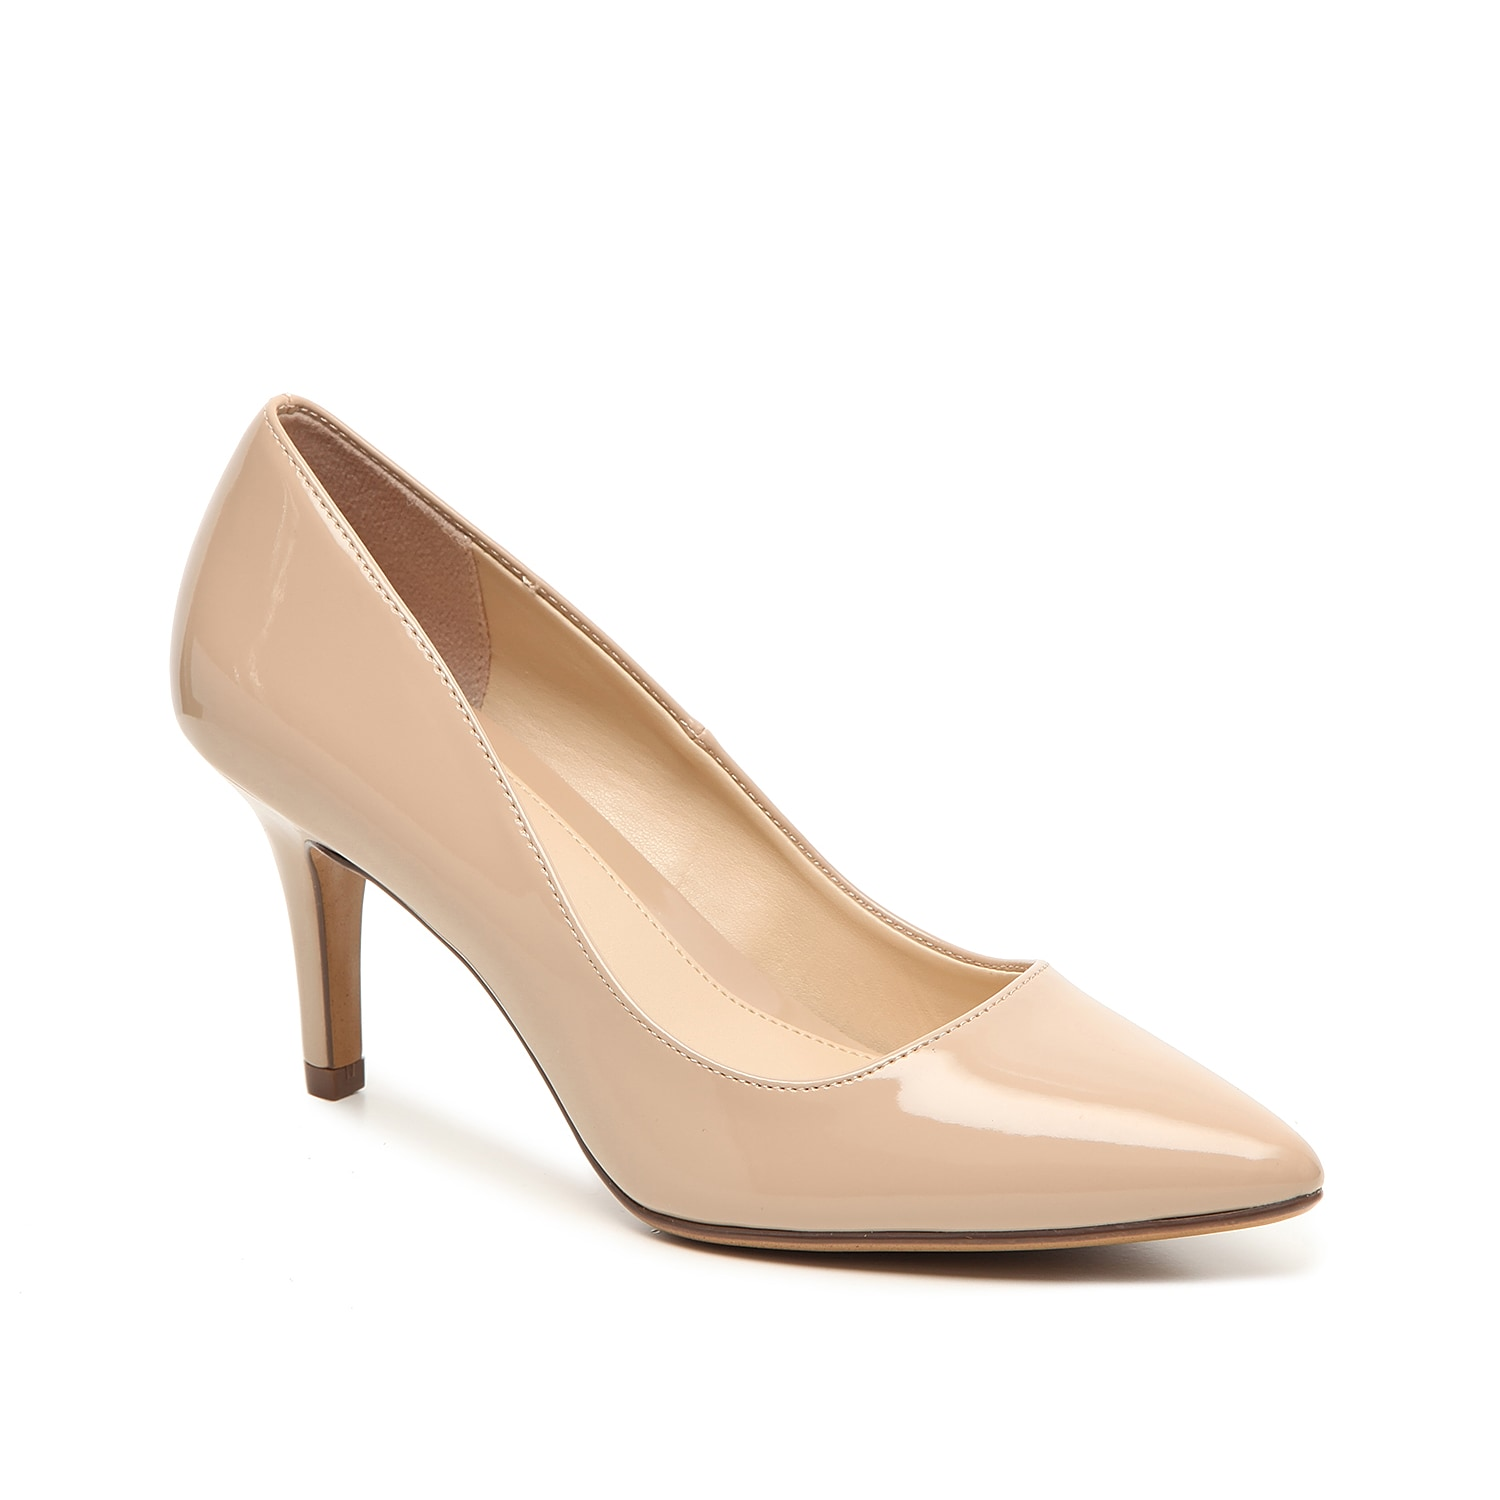 A quick and easy pointed toe pump from Kelly & Katie gives you versatility and style wherever you go! The Tess will do just that!